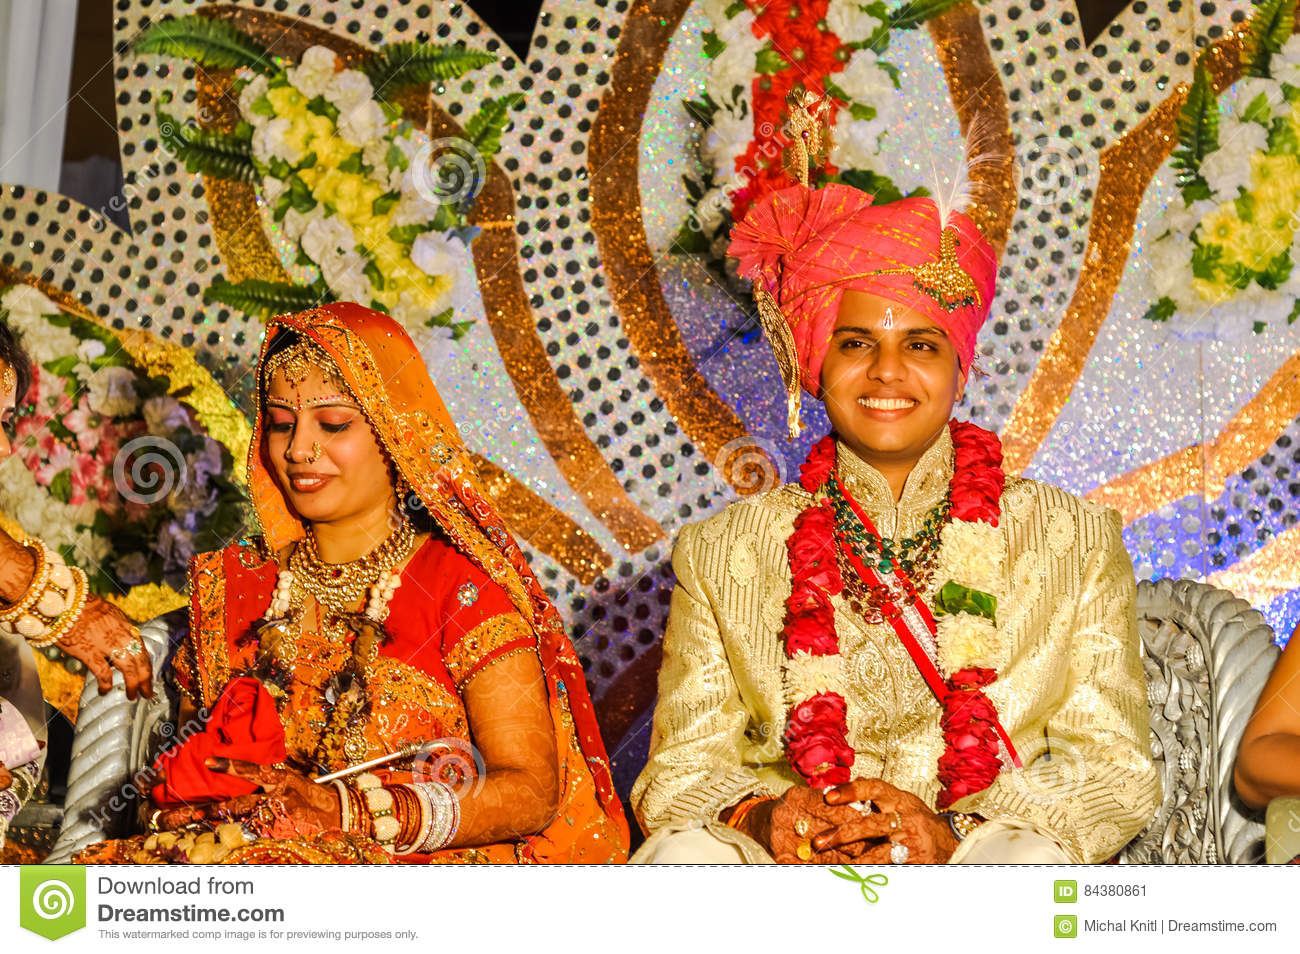 5d9b0e557a Bikaner, Rajasthan - circa December 2011: Bride and groom in beautiful  wedding costumes pose during their wedding ceremony in Bikaner, Rajasthan.